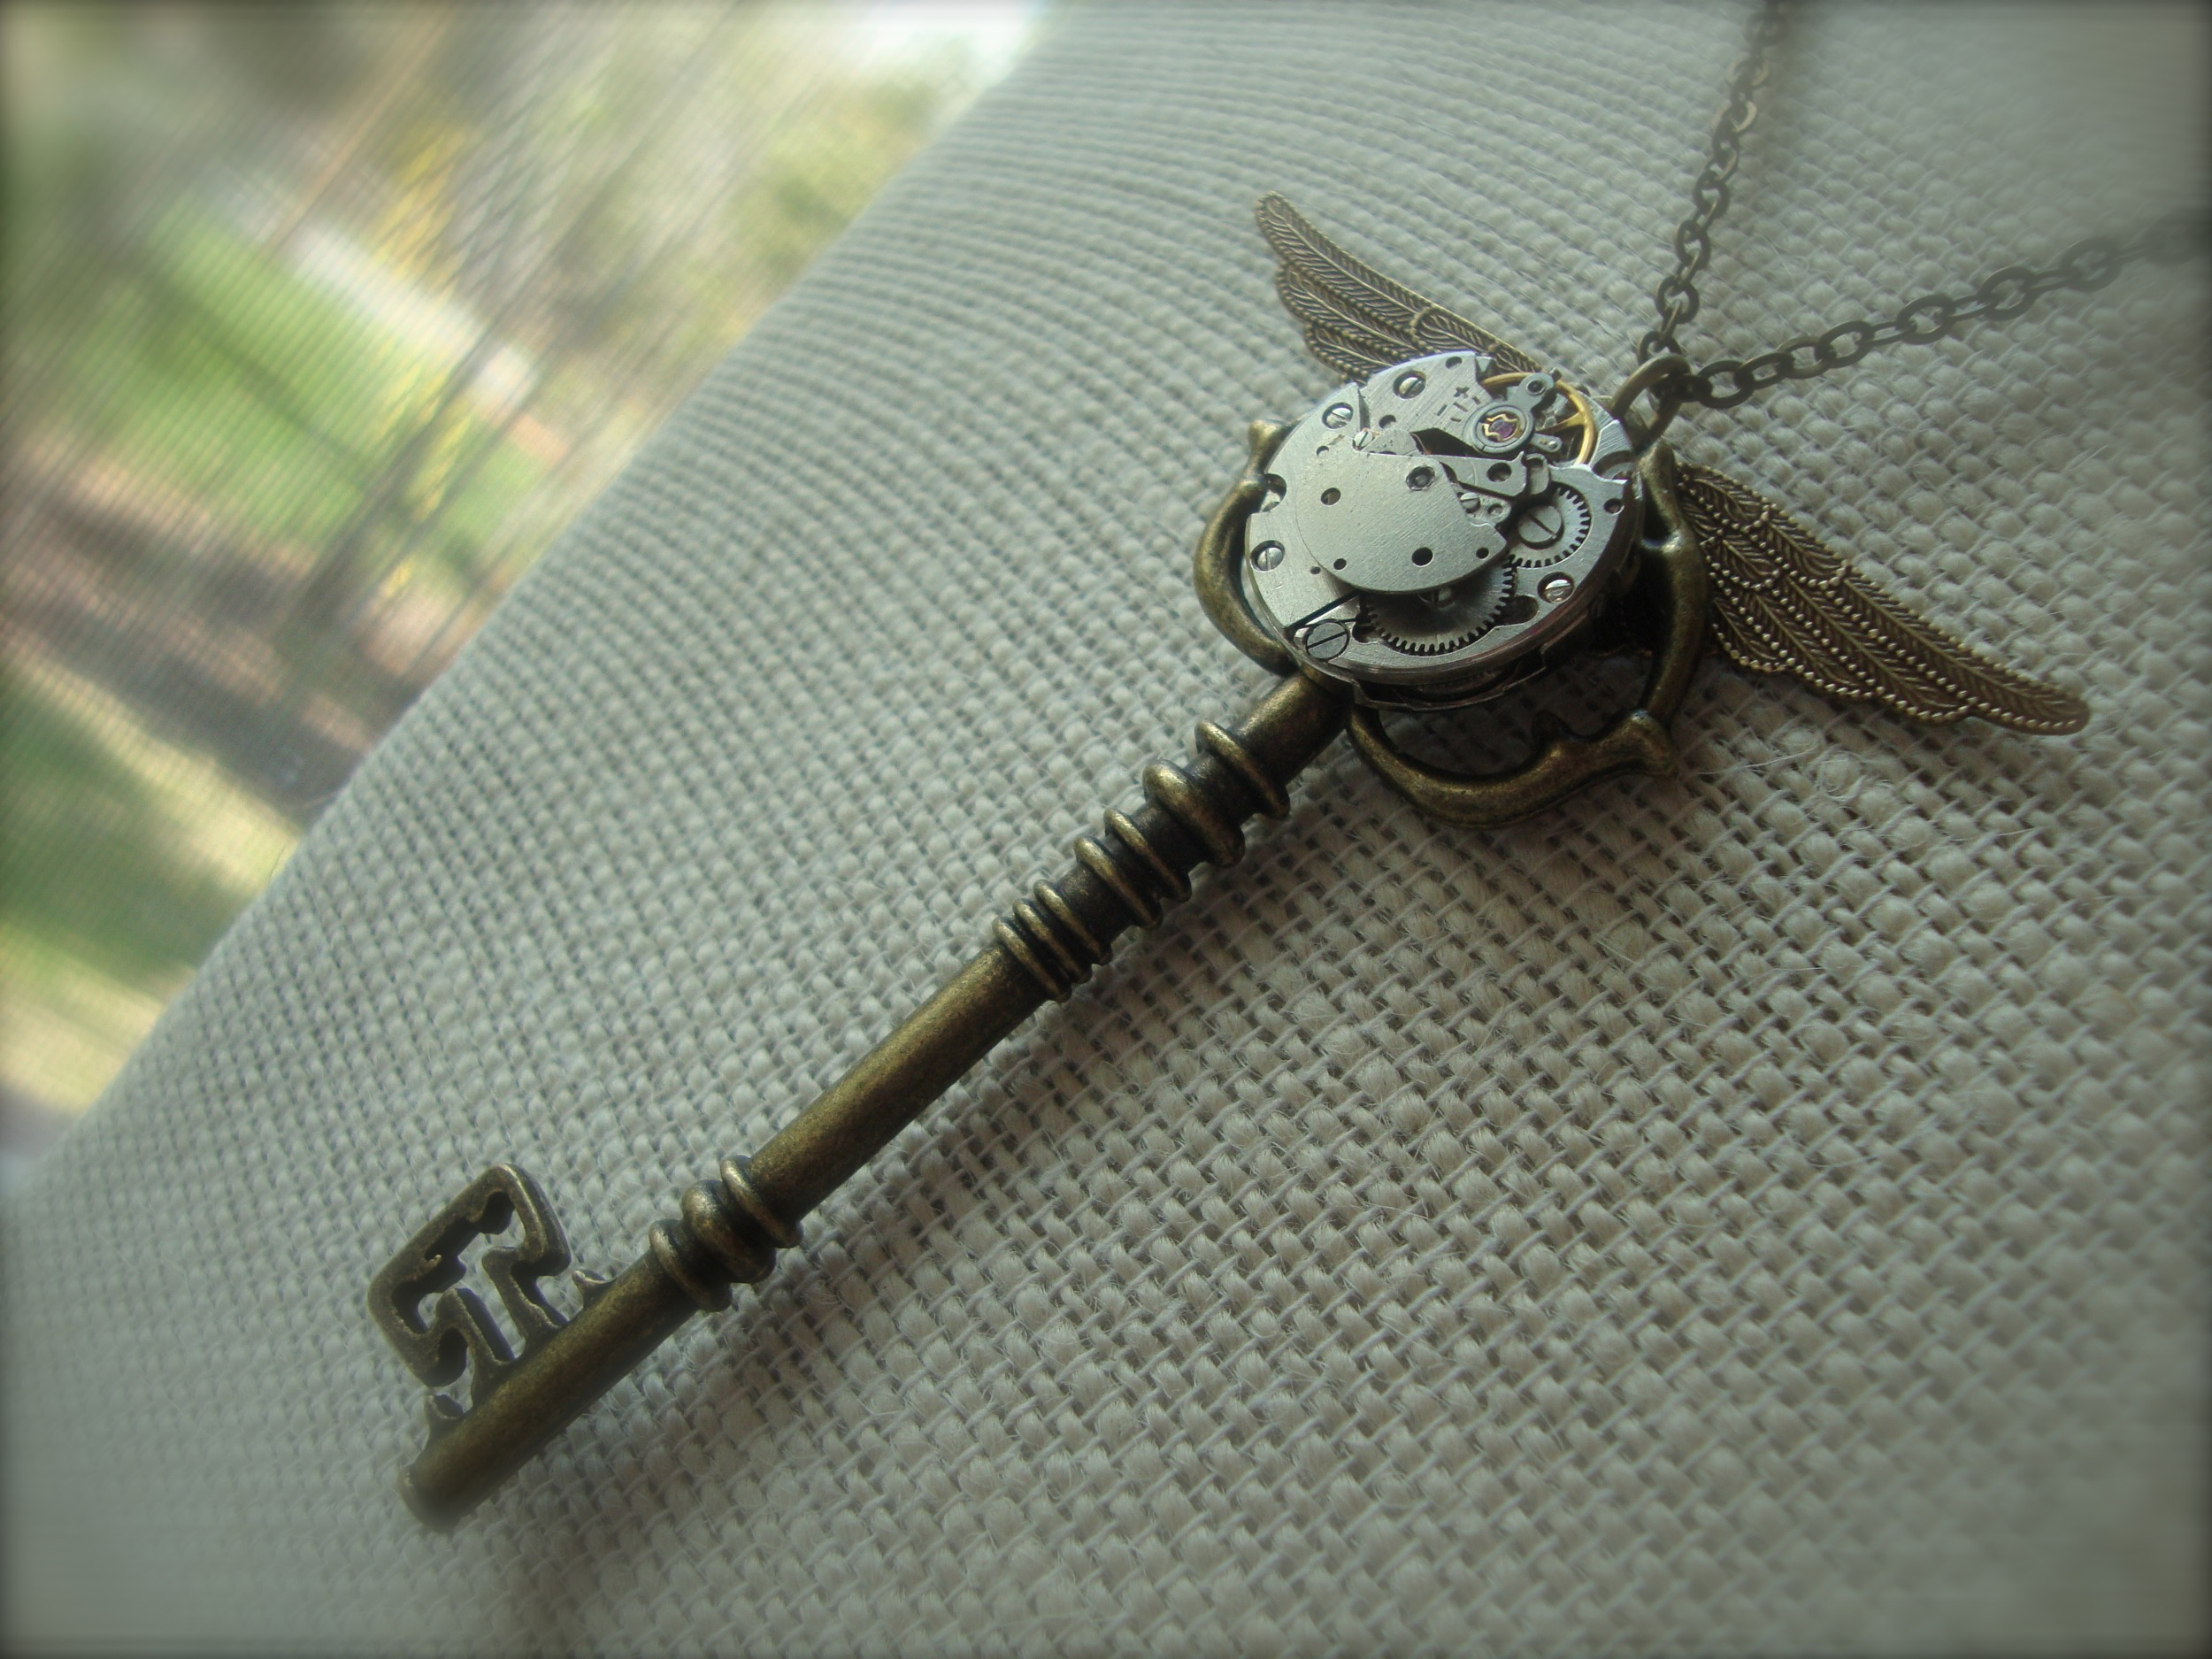 The Flying Key Harry Potter Inspired Steampunk Skeleton Key Necklace With Vintage Watch Movement Sorcerers Stone Handmade From Jetaimeboutique